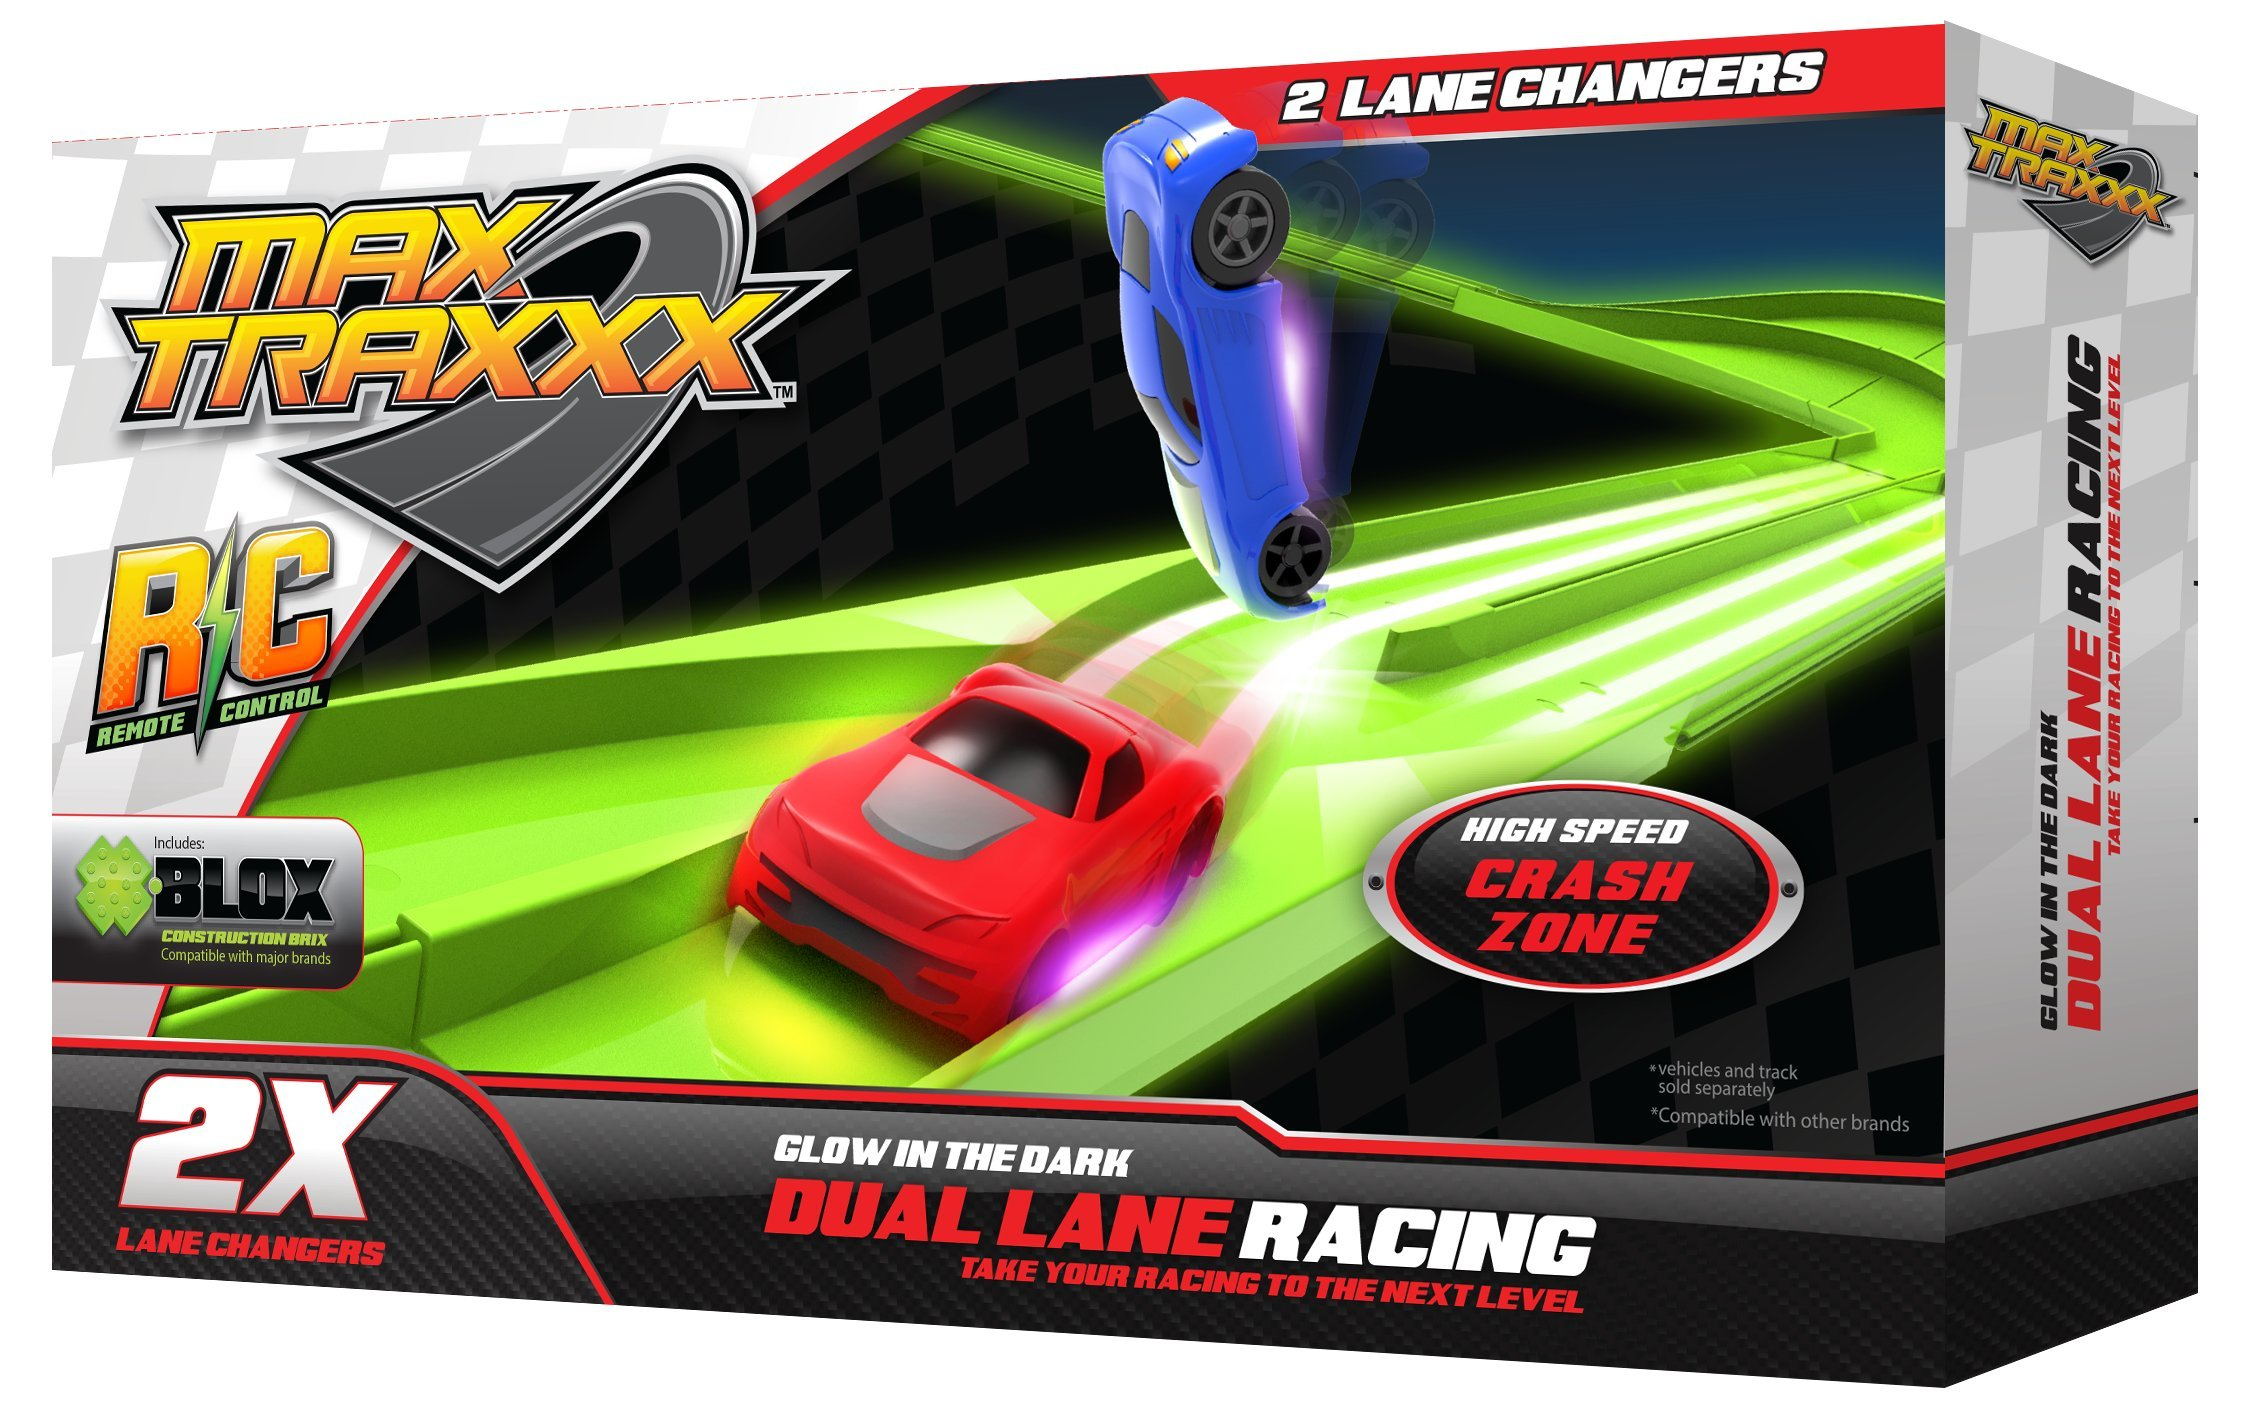 Max Traxxx Tracer Racers Dual Track Lane Changer Add On Module for Gravity Drive and Remote Control Sets